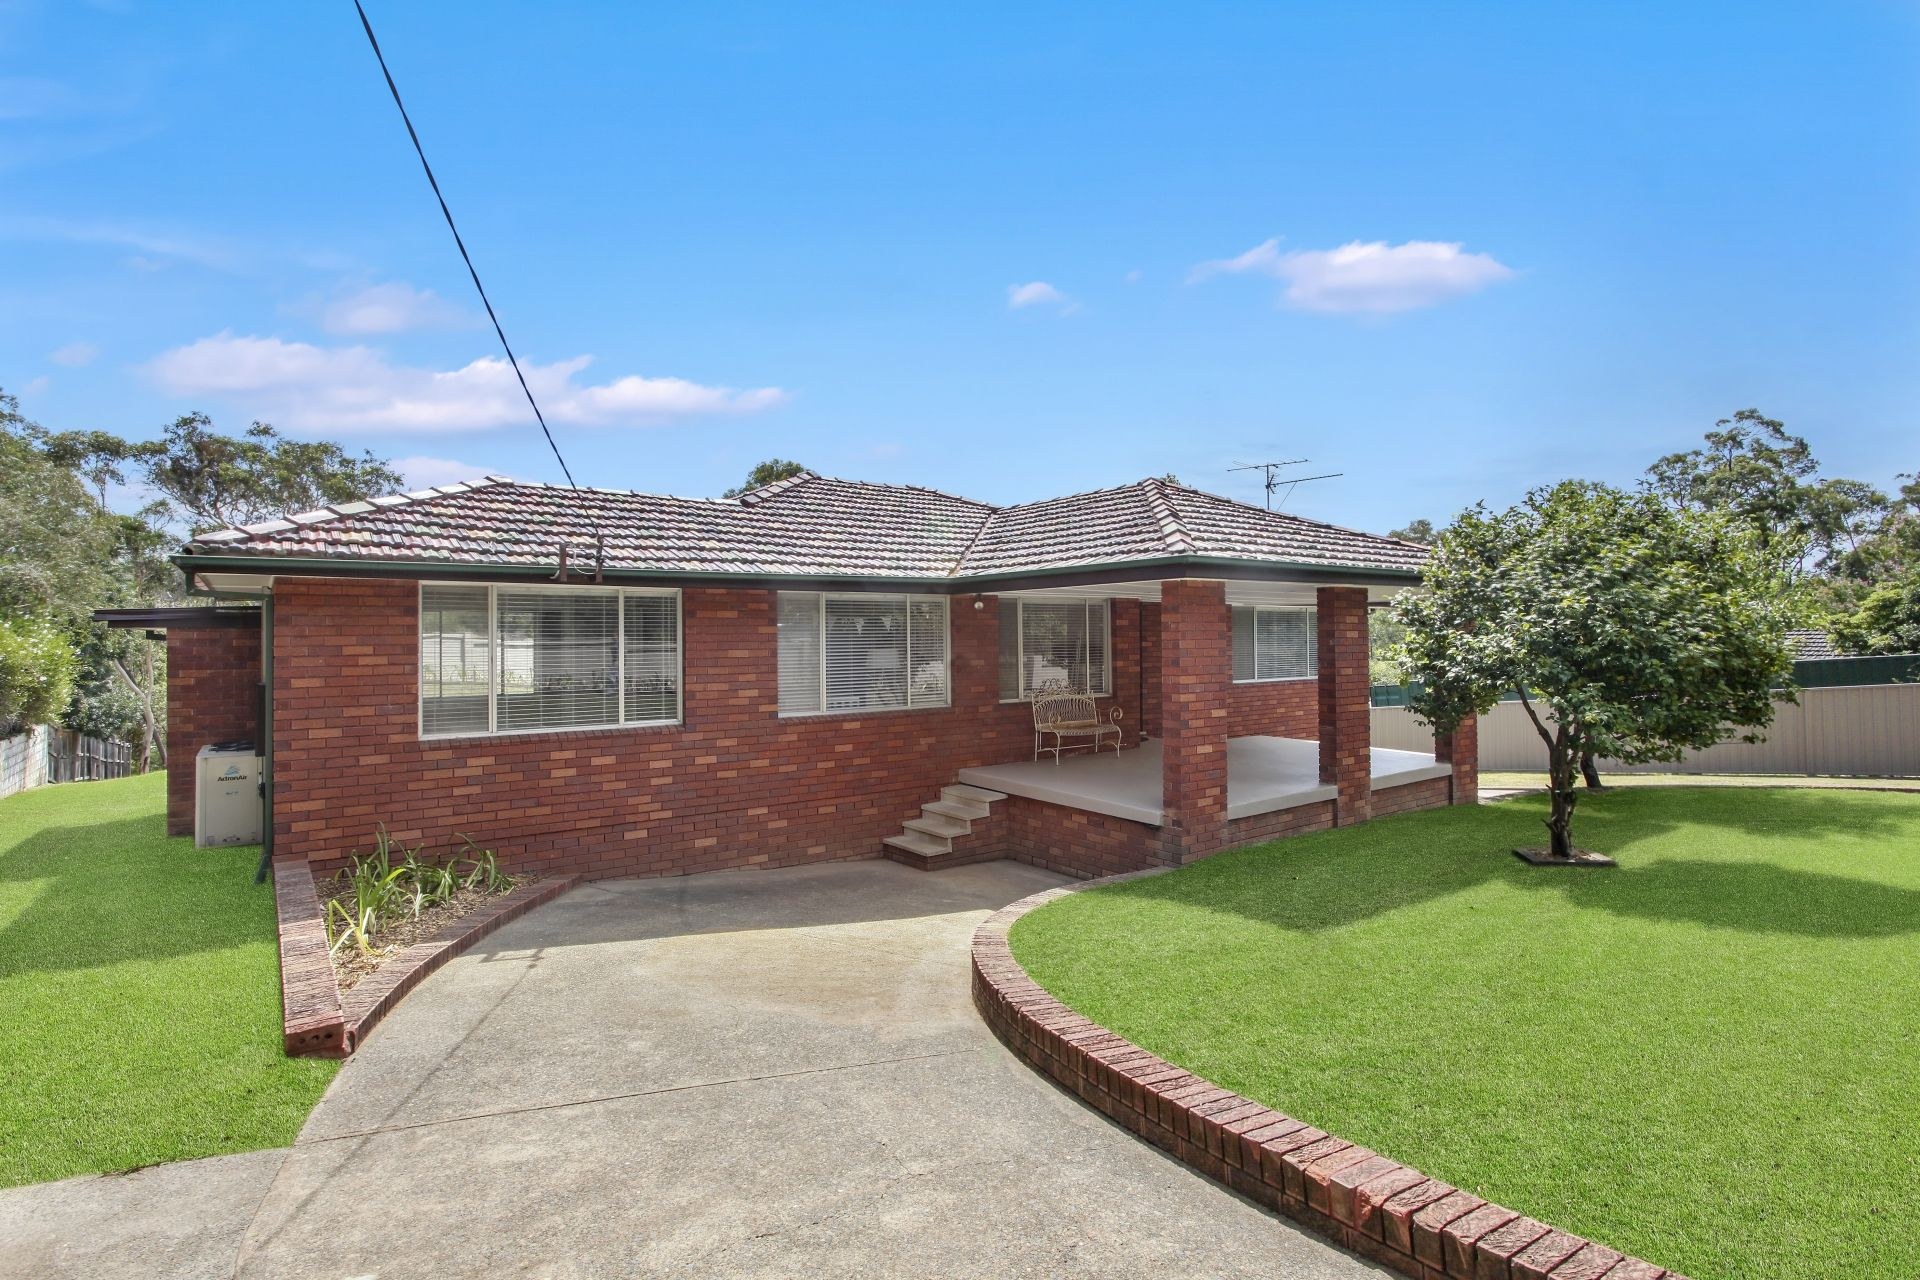 102 Clearview Parade Hazelbrook 2779